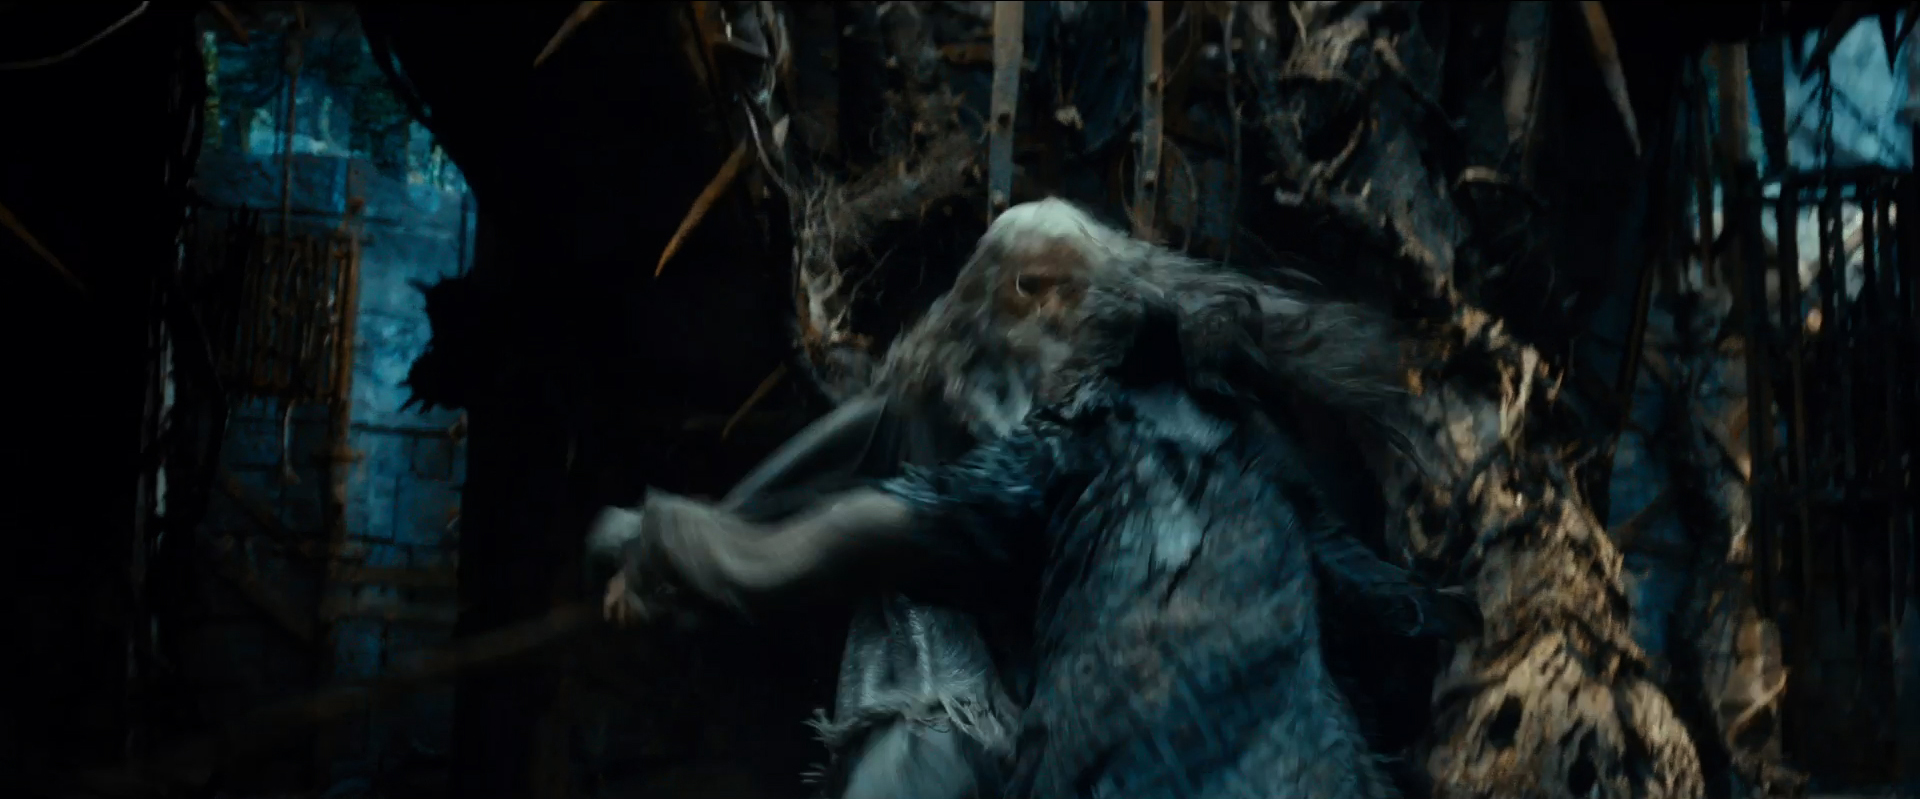 Necromancer Hobbit Desolation Of Smaug The hobbit trailer analysis ... Necromancer Hobbit Desolation Of Smaug